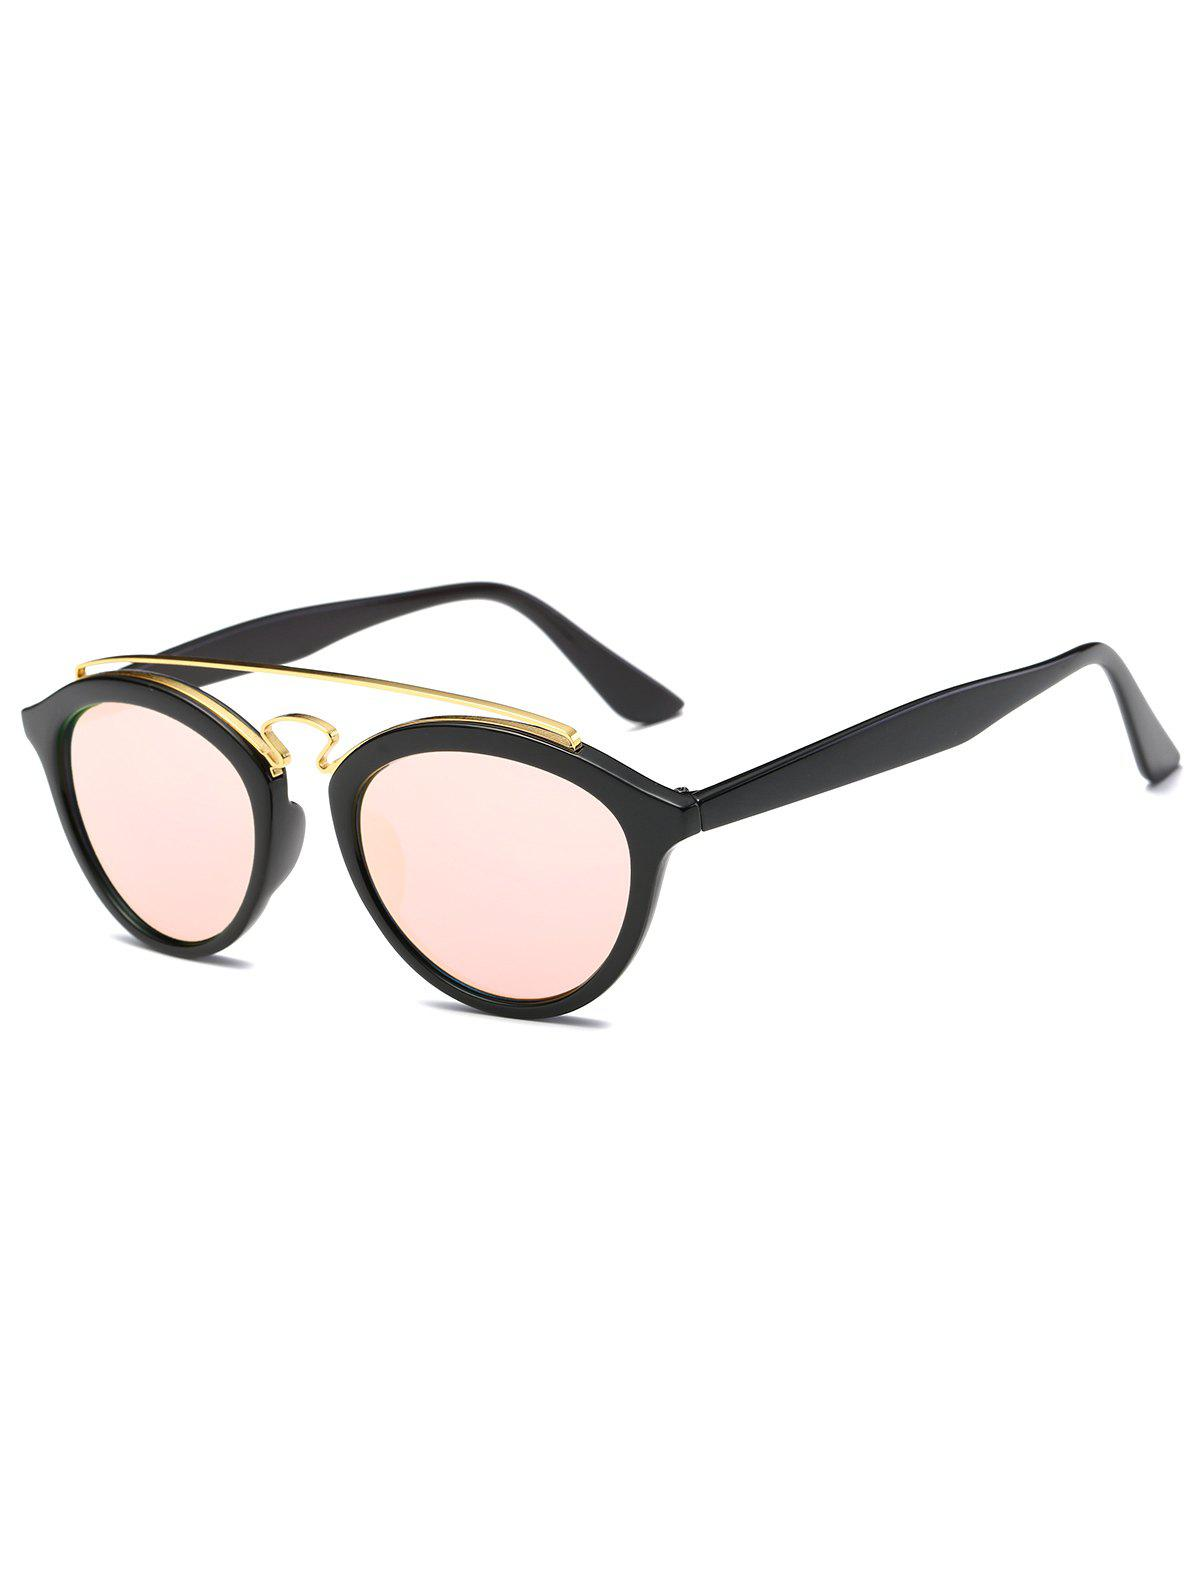 Street Metallic Crossbar Mirrored Trendsetter Sunglasses - PINK